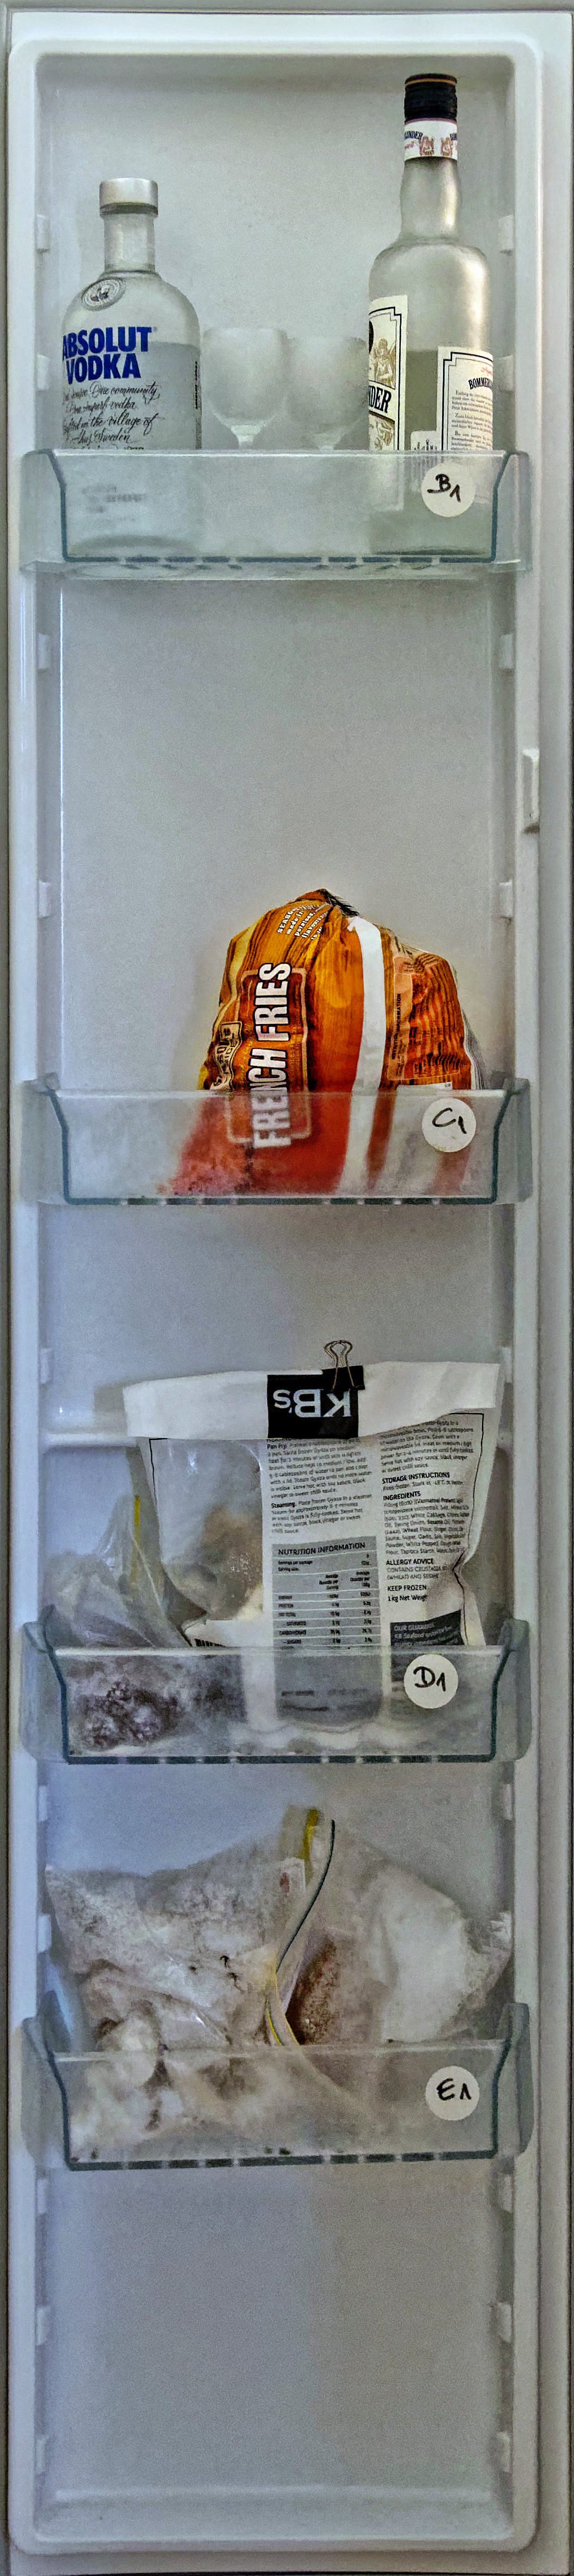 This should be Old-fridge-2.jpeg.  Is it missing?